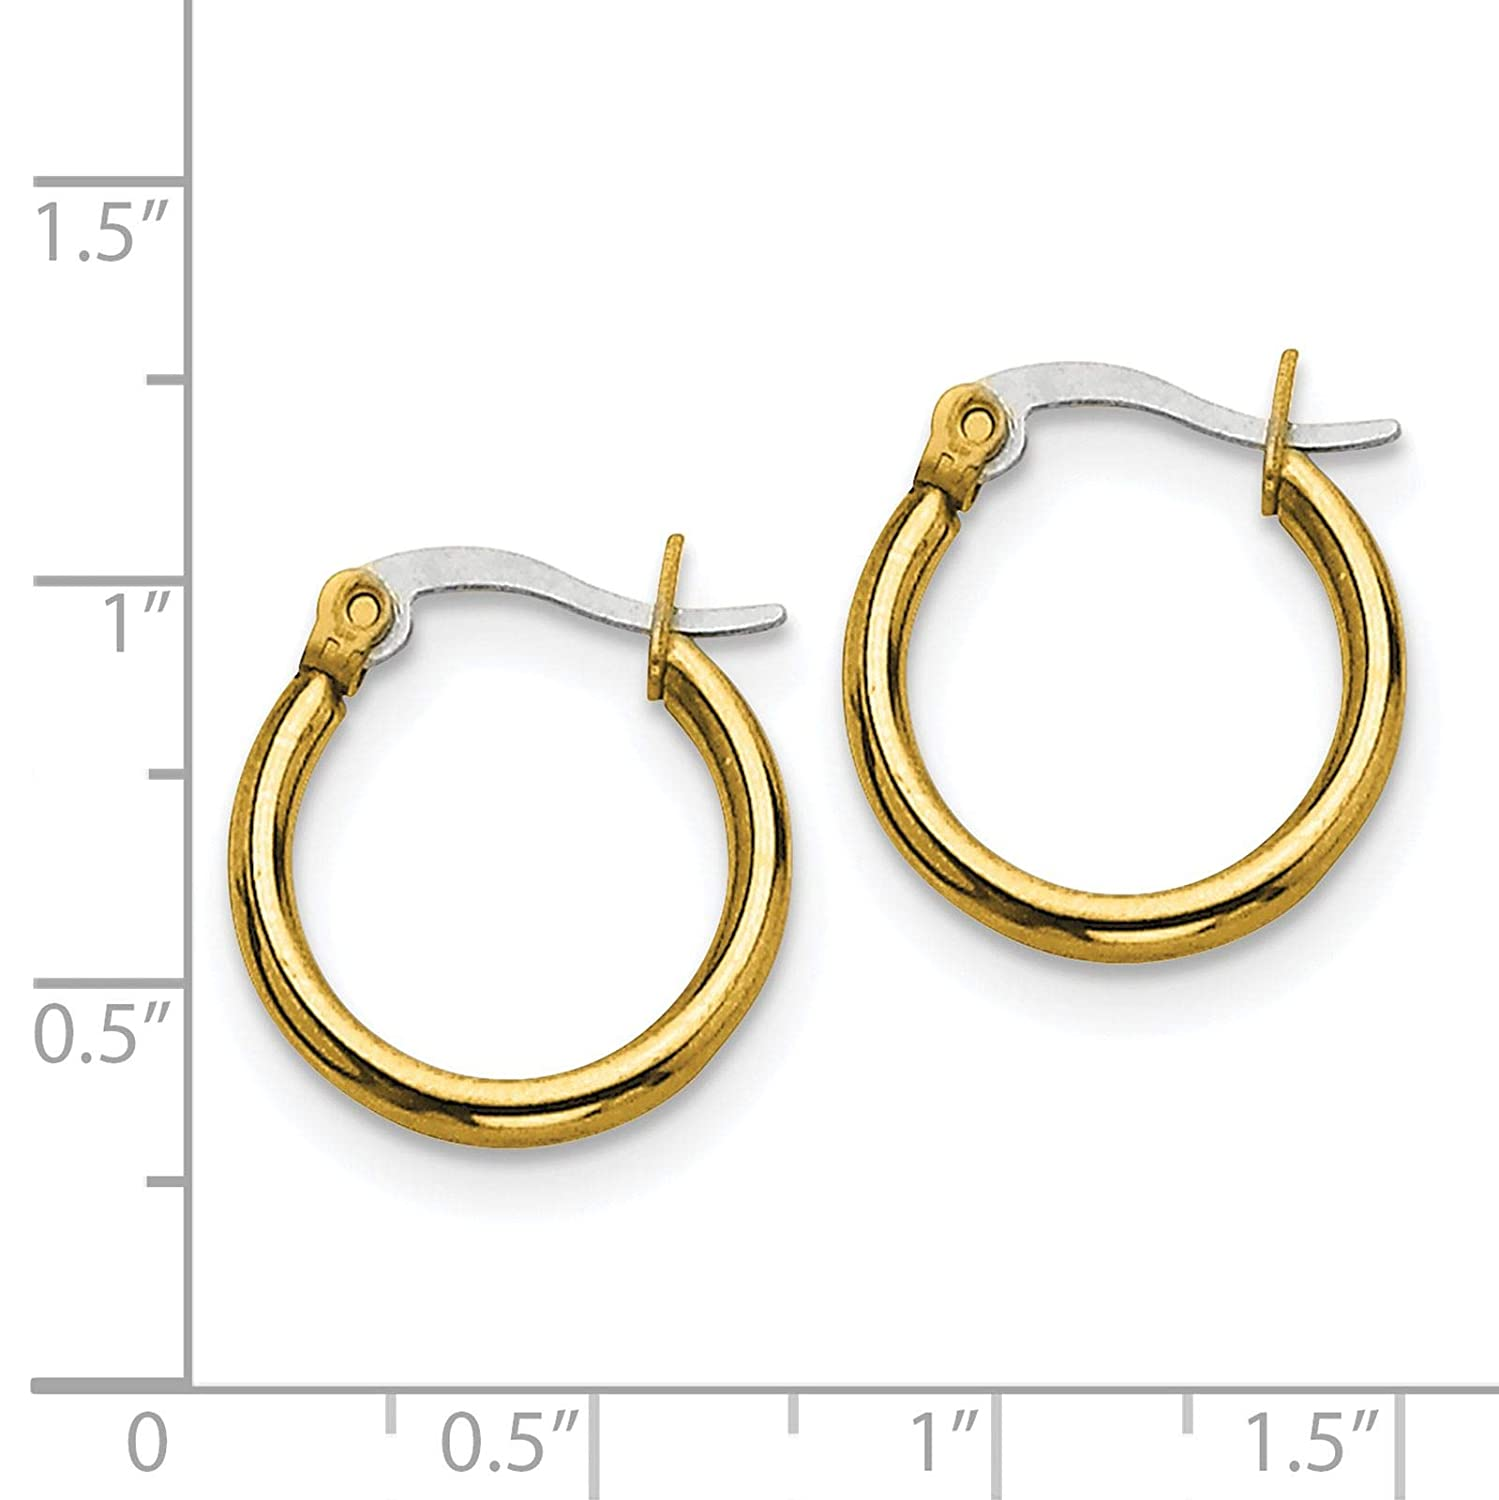 Stainless Steel Yellow IP-plated Polished Round Hinged Hoop Earrings 2mm x 19mm